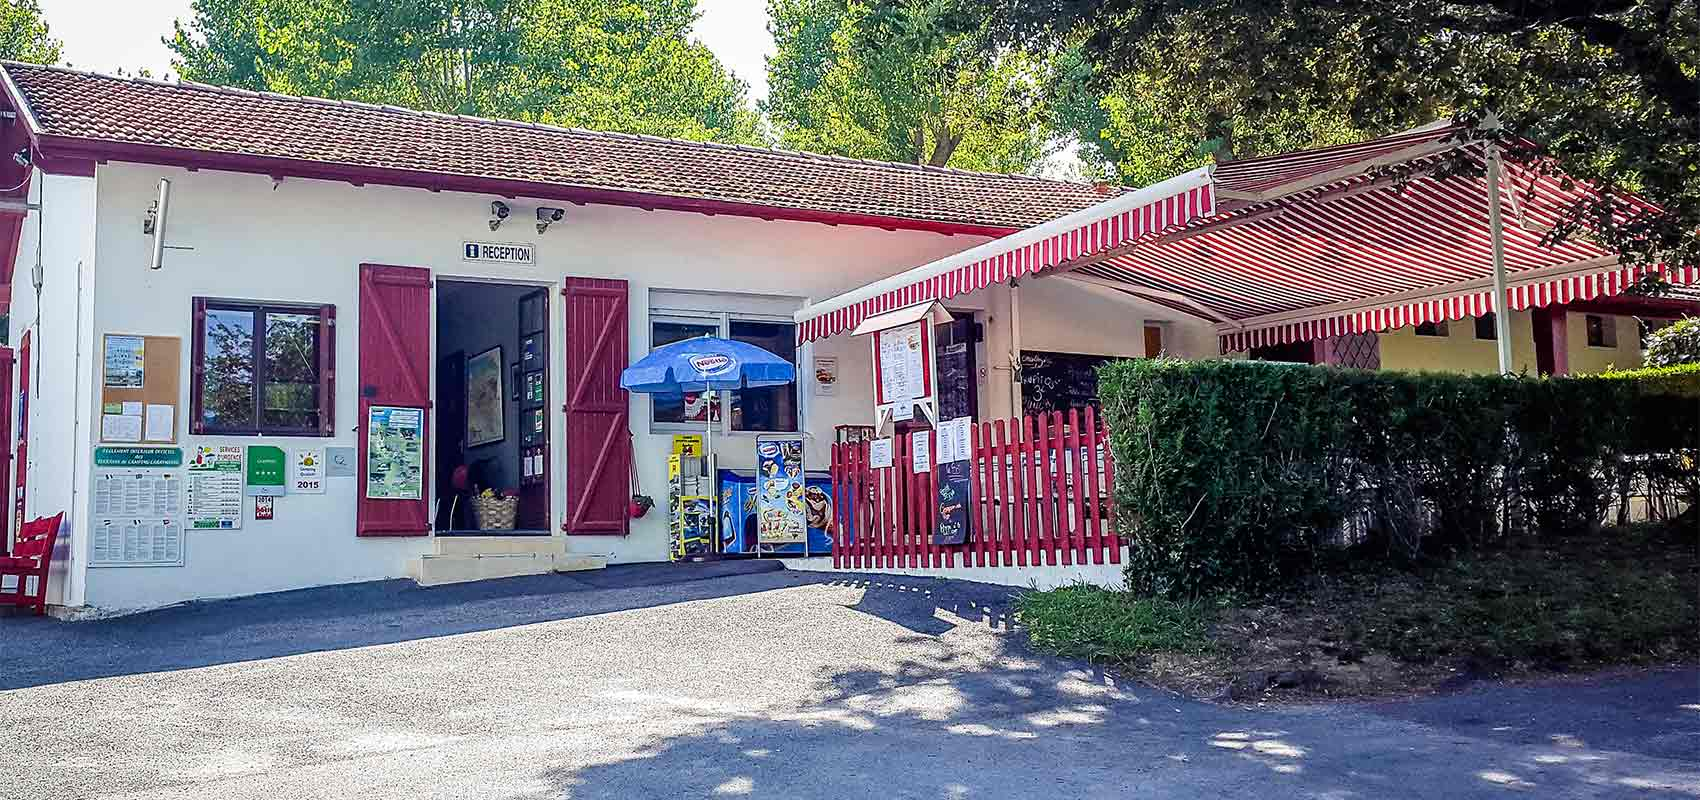 Pays basque campsite with snack bar and restaurant for Camping avec piscine pays basque